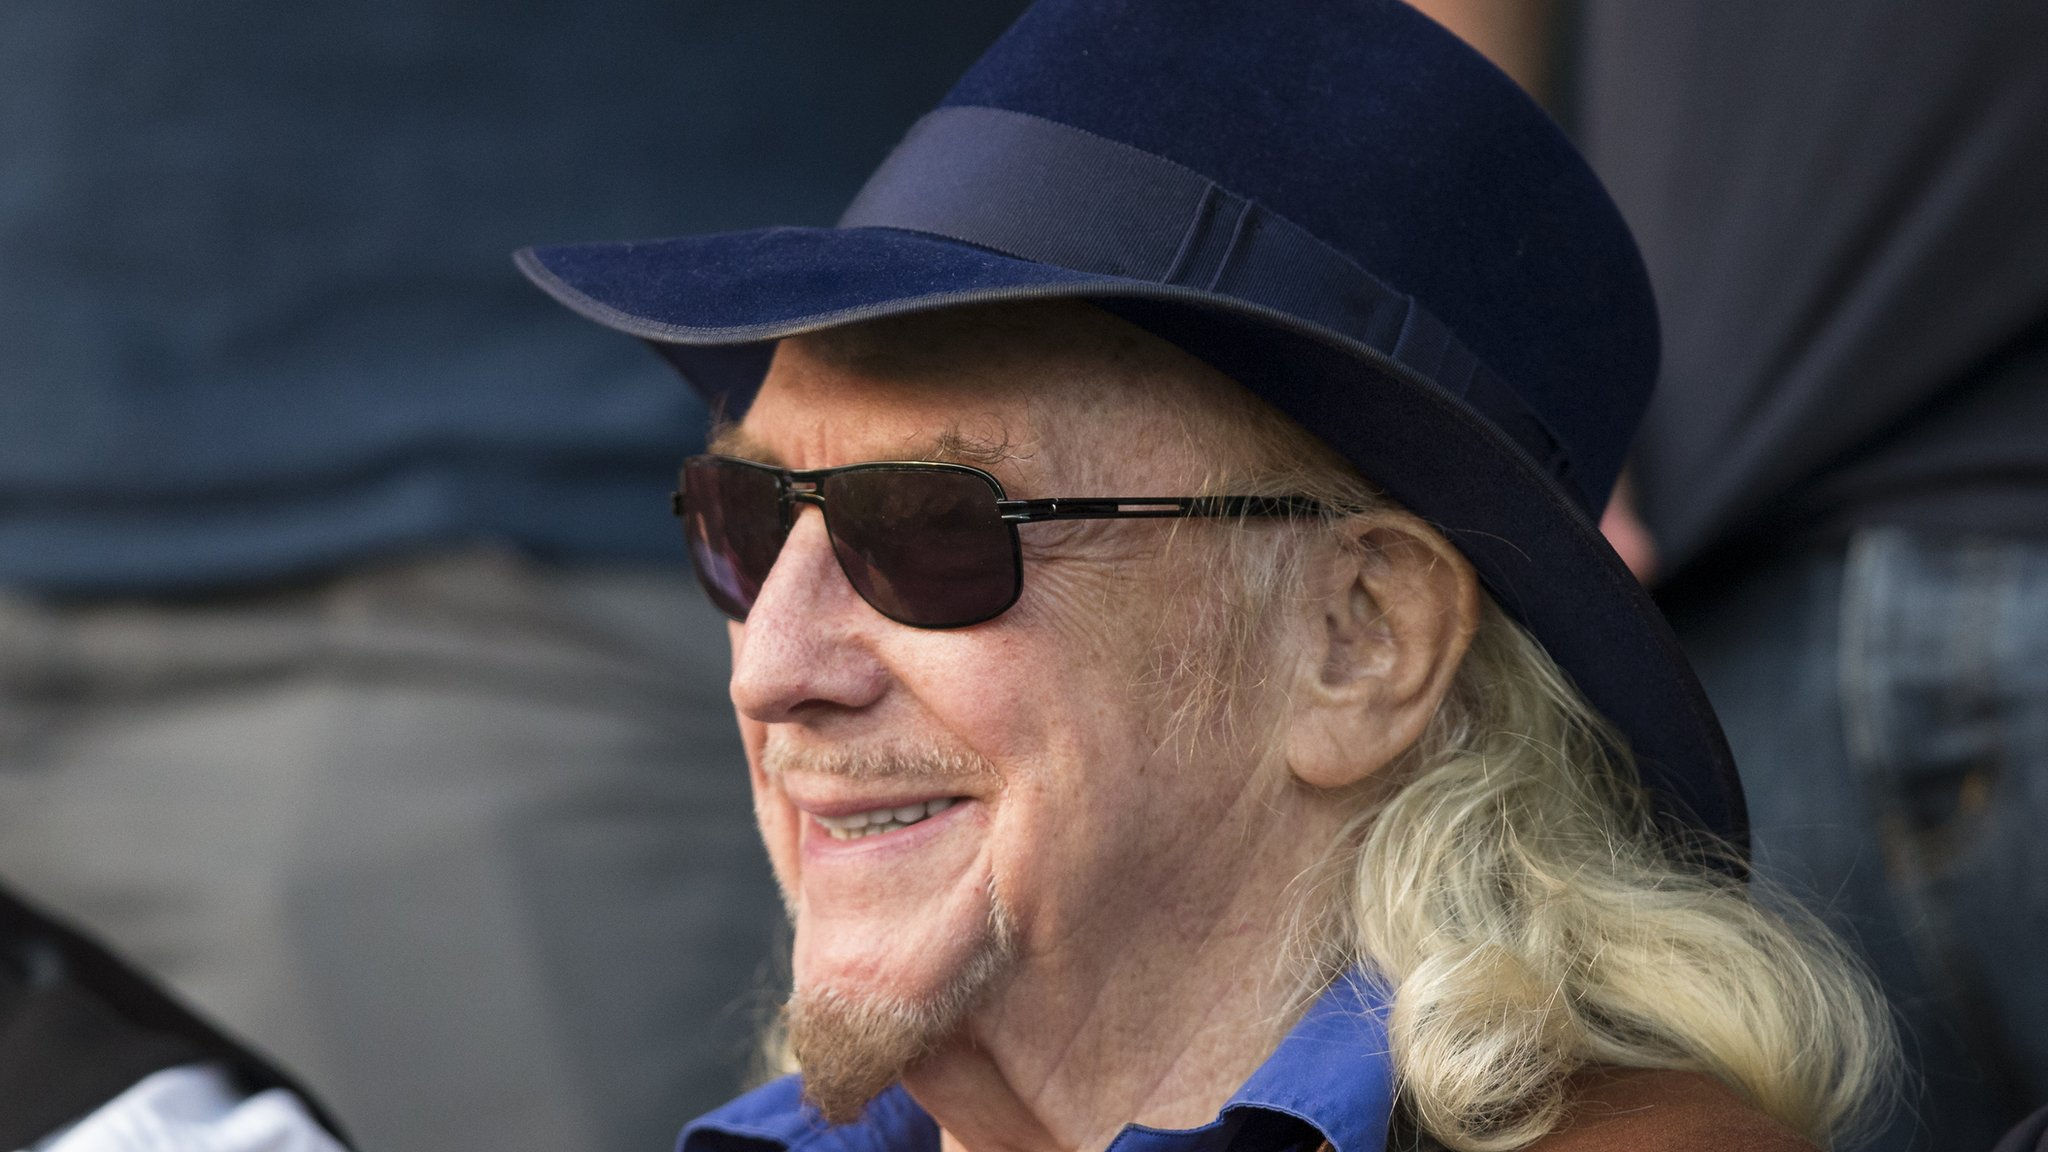 Blackpool: Court rules Oyston family will be forced to sell shares in club if debt not paid